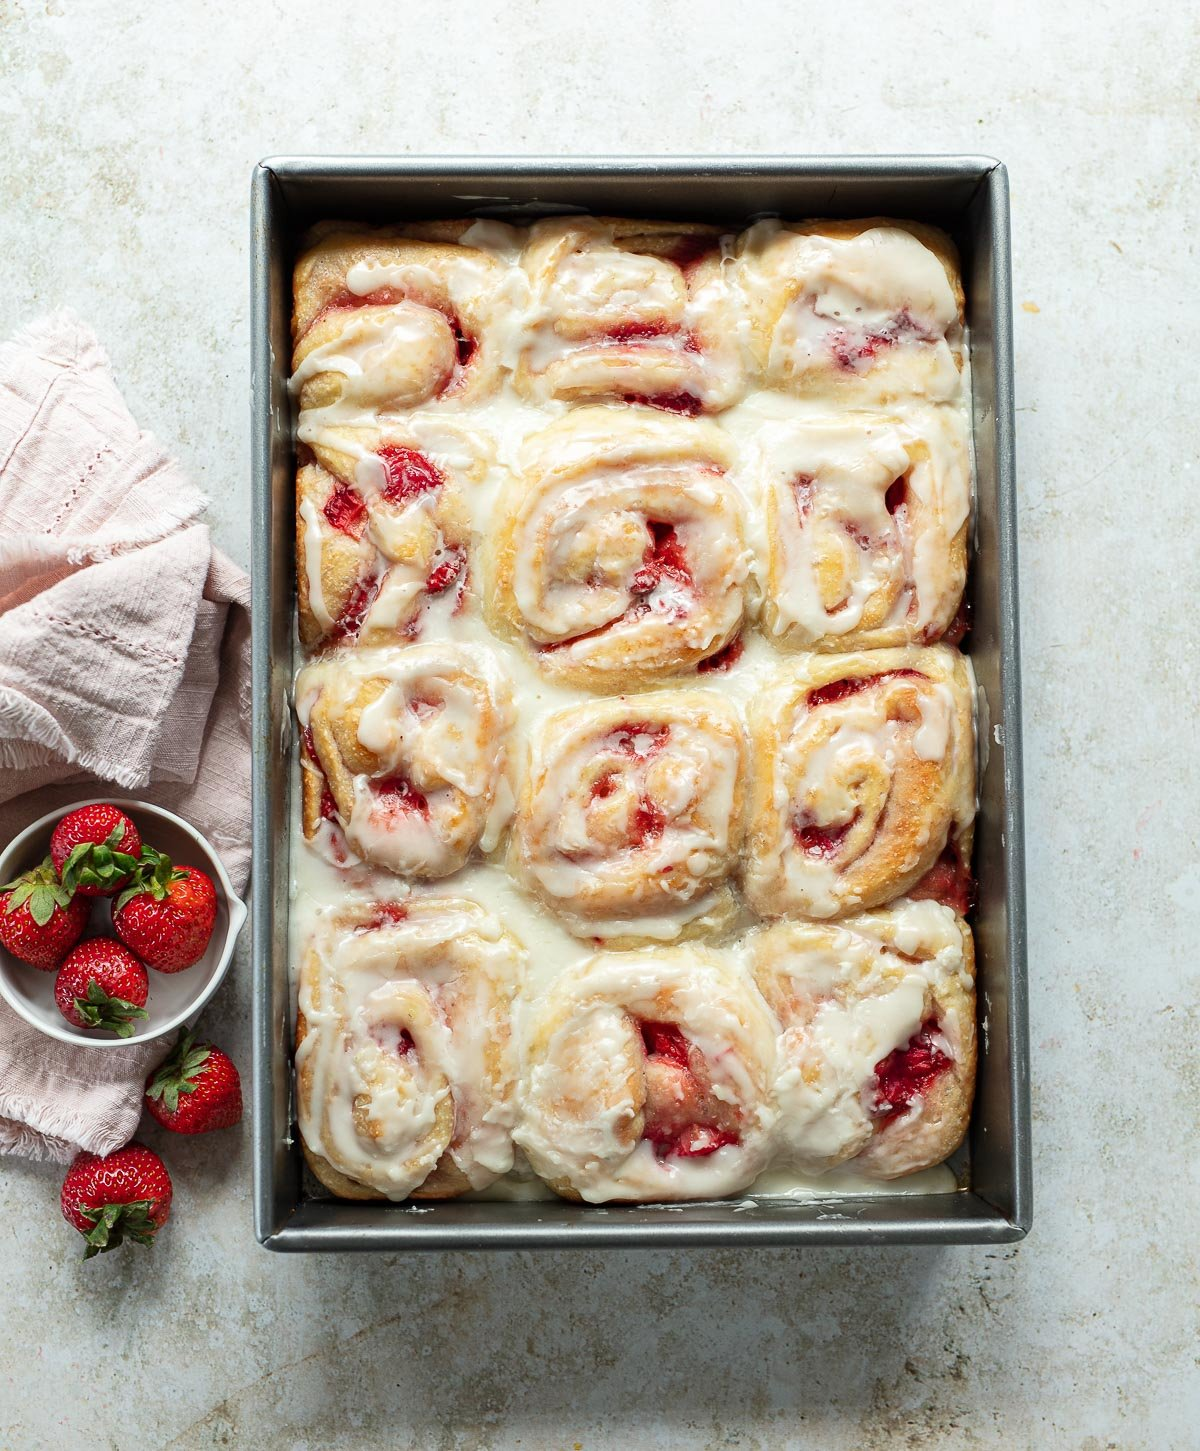 A rectangular metal baking pan filled with baked sweet rolls with swirls of strawberry filling and a creamy lemon glaze.